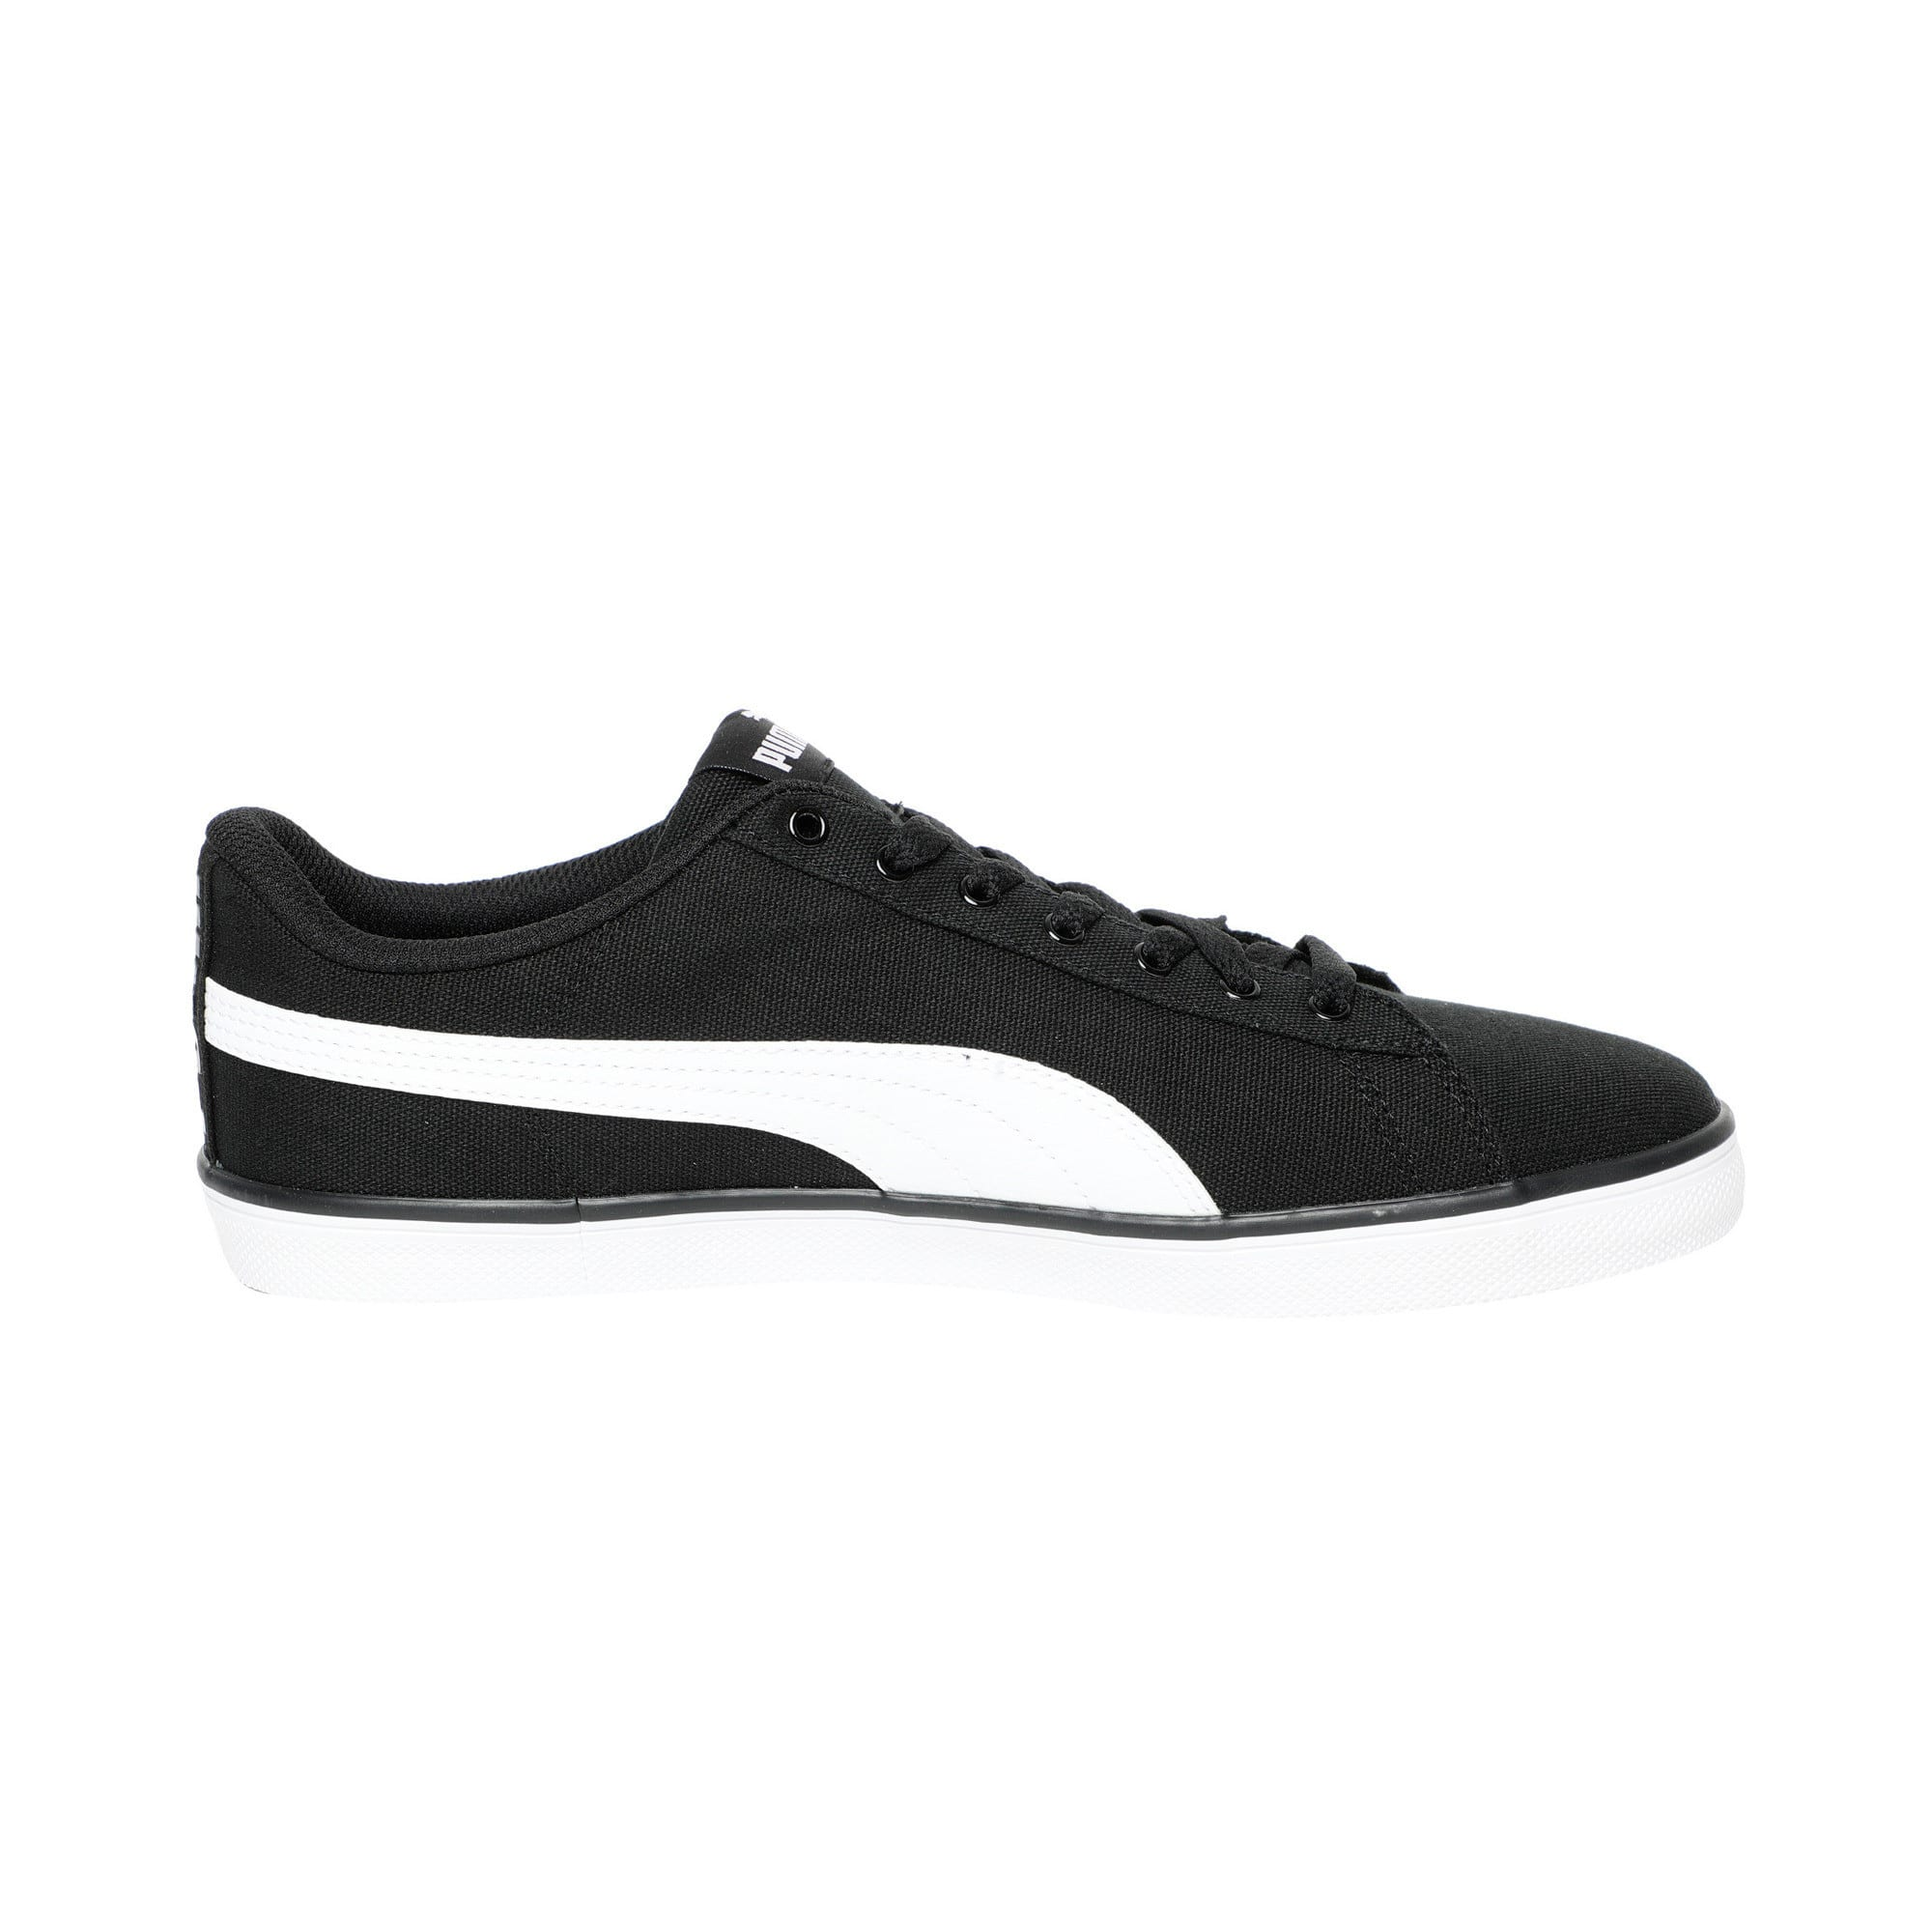 Thumbnail 5 of Urban Plus CV, Puma Black-Puma White, medium-IND